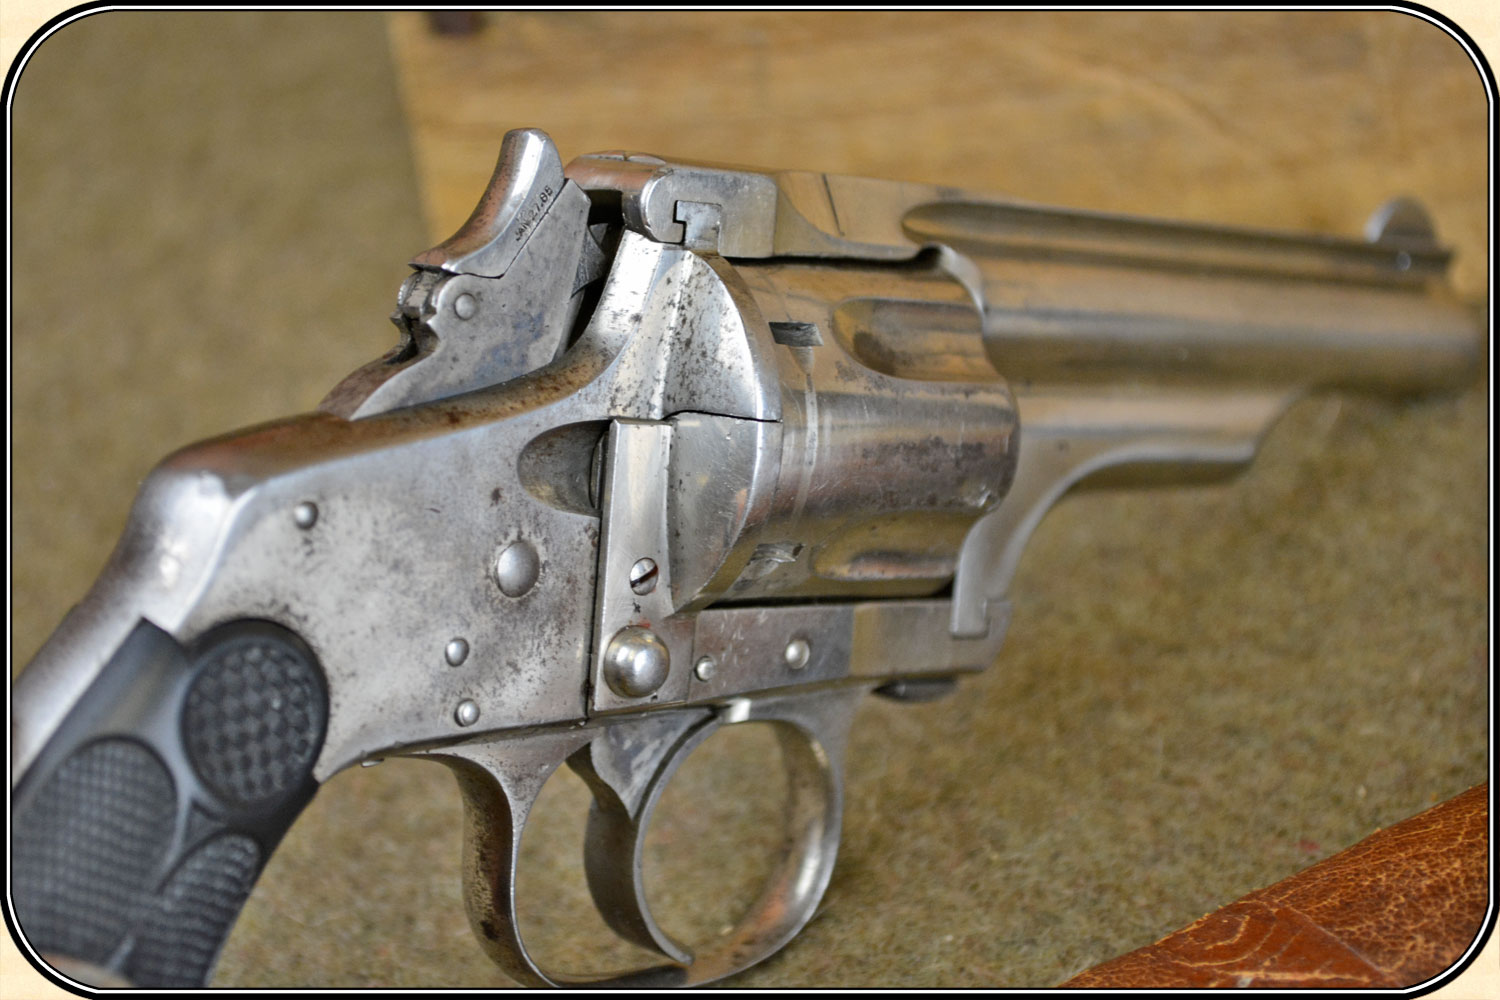 A casual look at the rear of a Merwin Hulbert revolver reveals a conventional looking loading gate and loading the revolver is quite conventional. It is the unloading that is startlingly different. (Picture courtesy riverjunction.com).